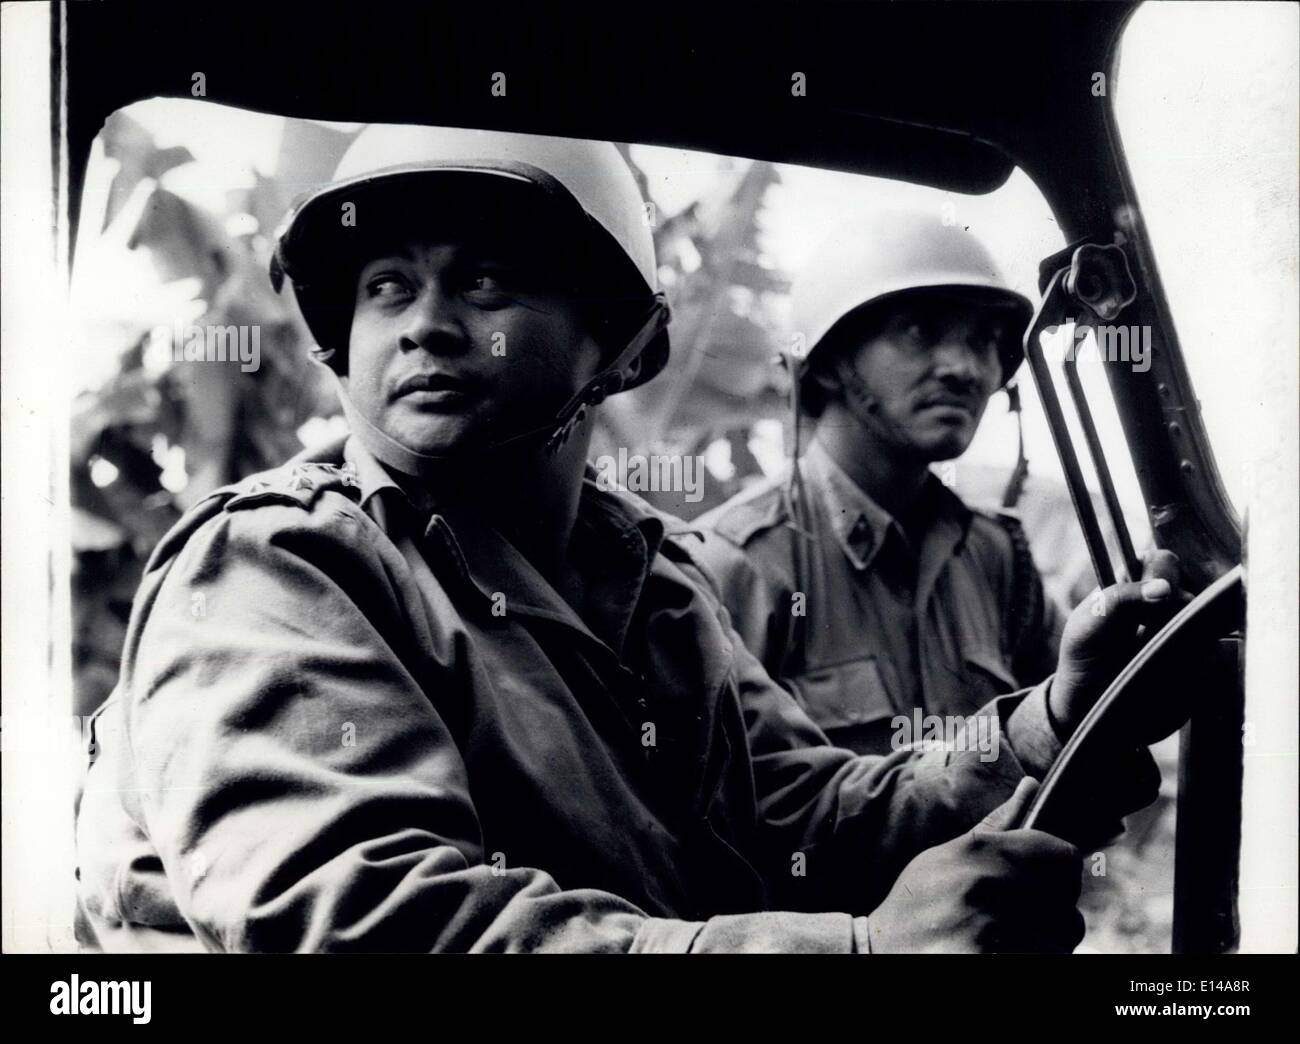 Apr. 17, 2012 - Typical members of Sukarno' s Army. - Stock Image